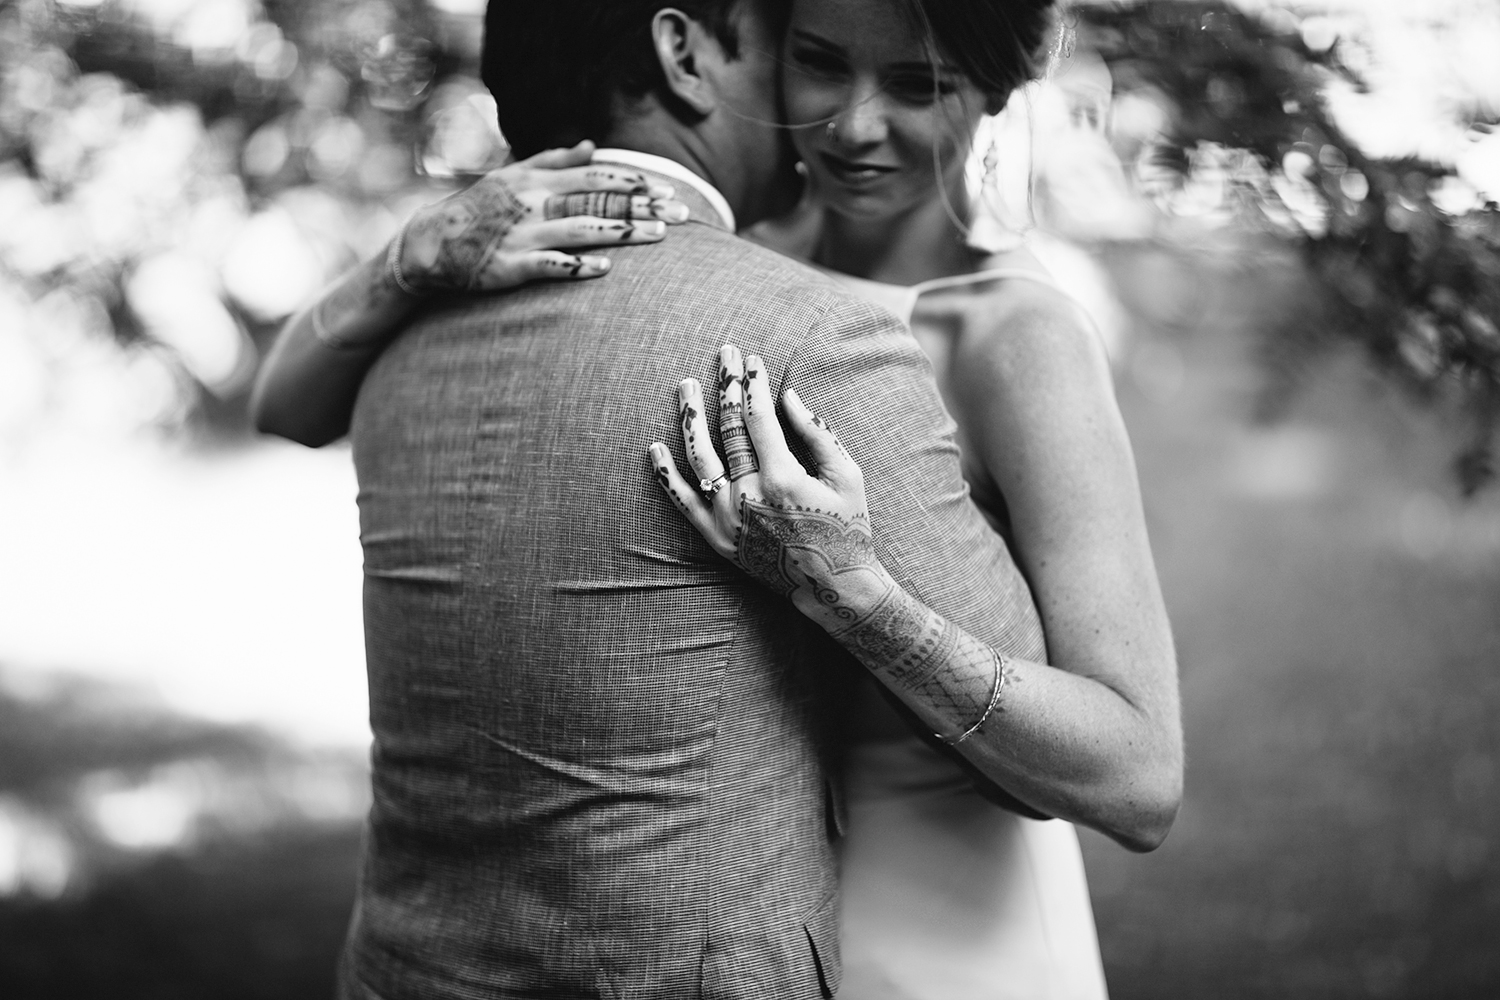 Best-Film-Wedding-Photographers-Toronto-Kodak-Trix-35mm-Analog-Wedding-Photography-Ontario-Canada-Small-town-coutry-wedding-couple-candid-portraits-intimate-documentary-fine-art-aesthetic-lifestyle-hugging-embrace.jpg